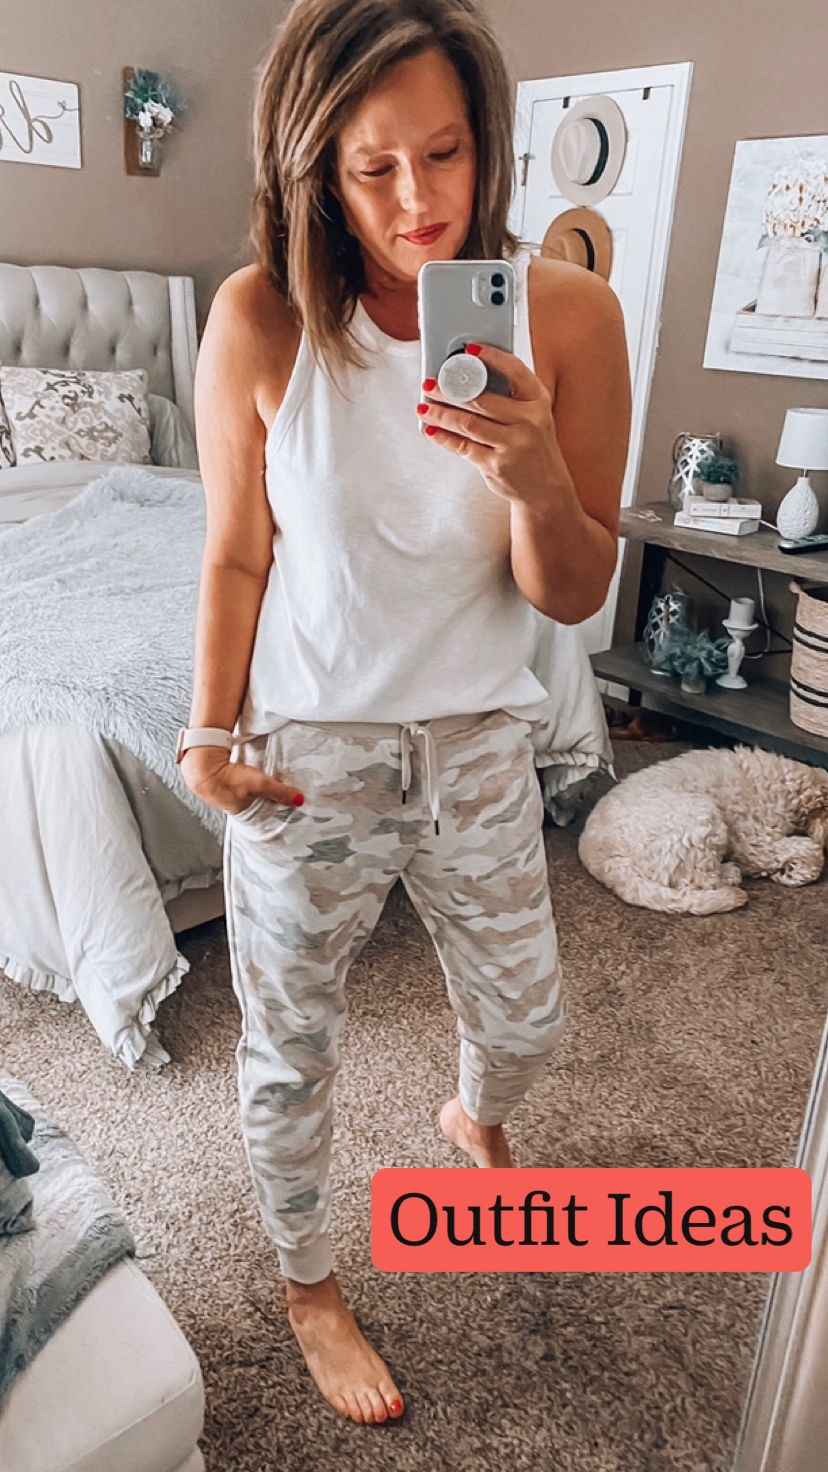 Outfit Ideas – Outfits I love